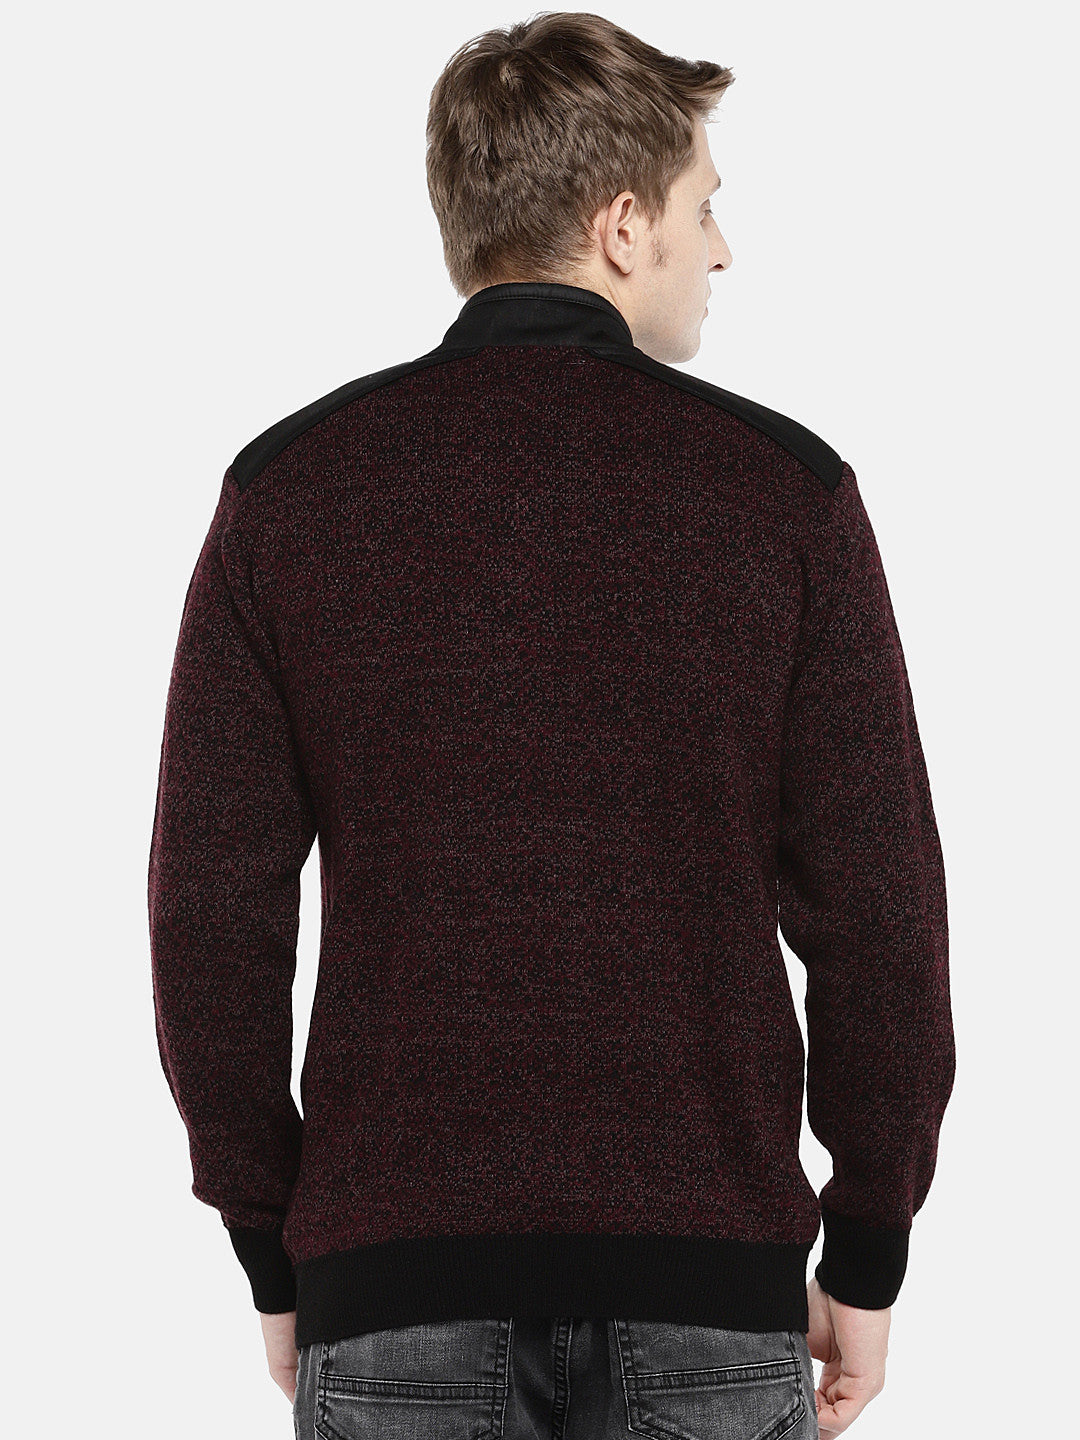 Maroon Self Design Tailored Jacket-3